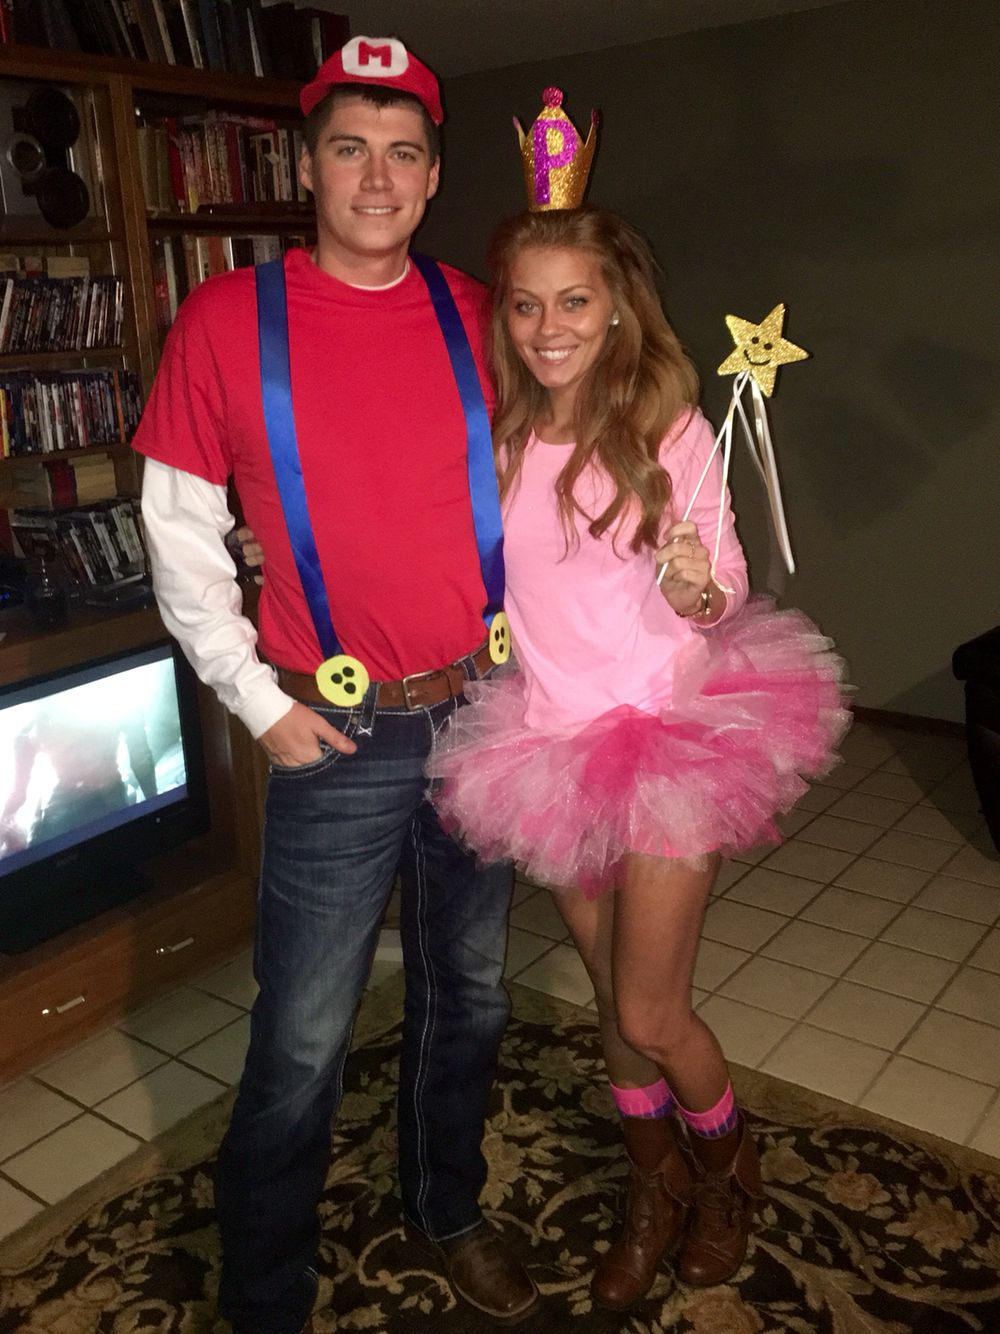 20 Couples Halloween Costumes You Won't Roll Your Eyes At ...